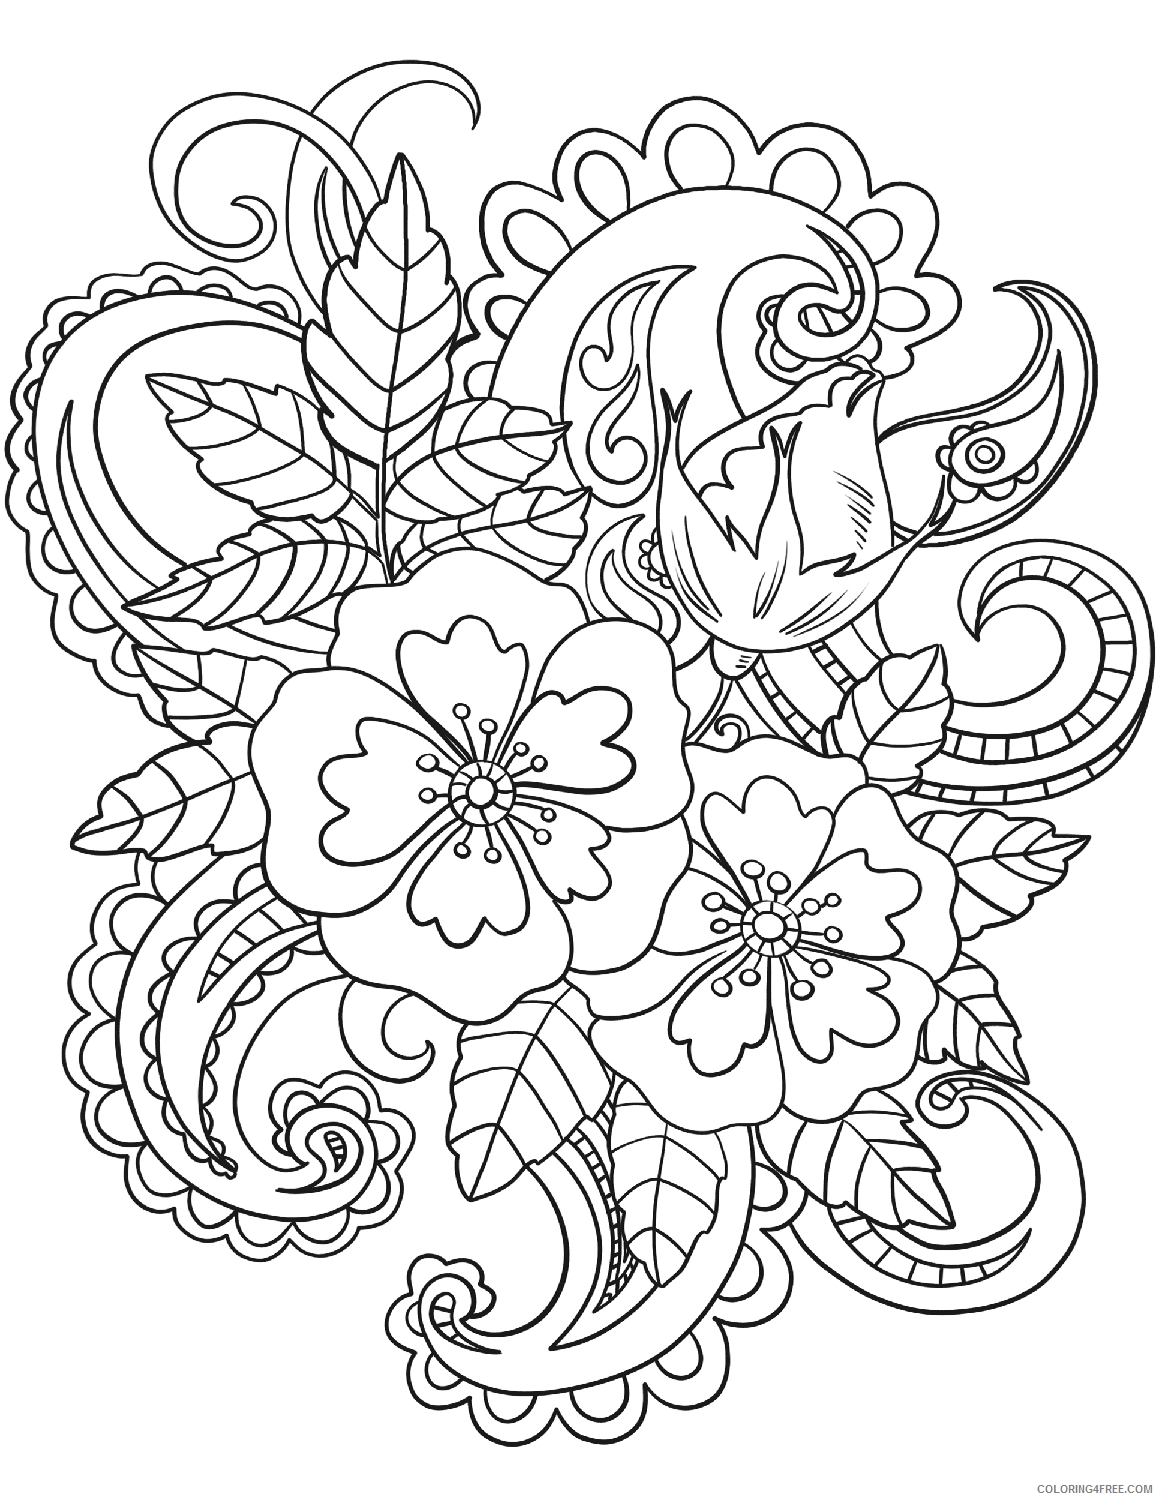 Adult Floral Coloring Pages Flower Pattern for Adults Printable 2020 363 Coloring4free